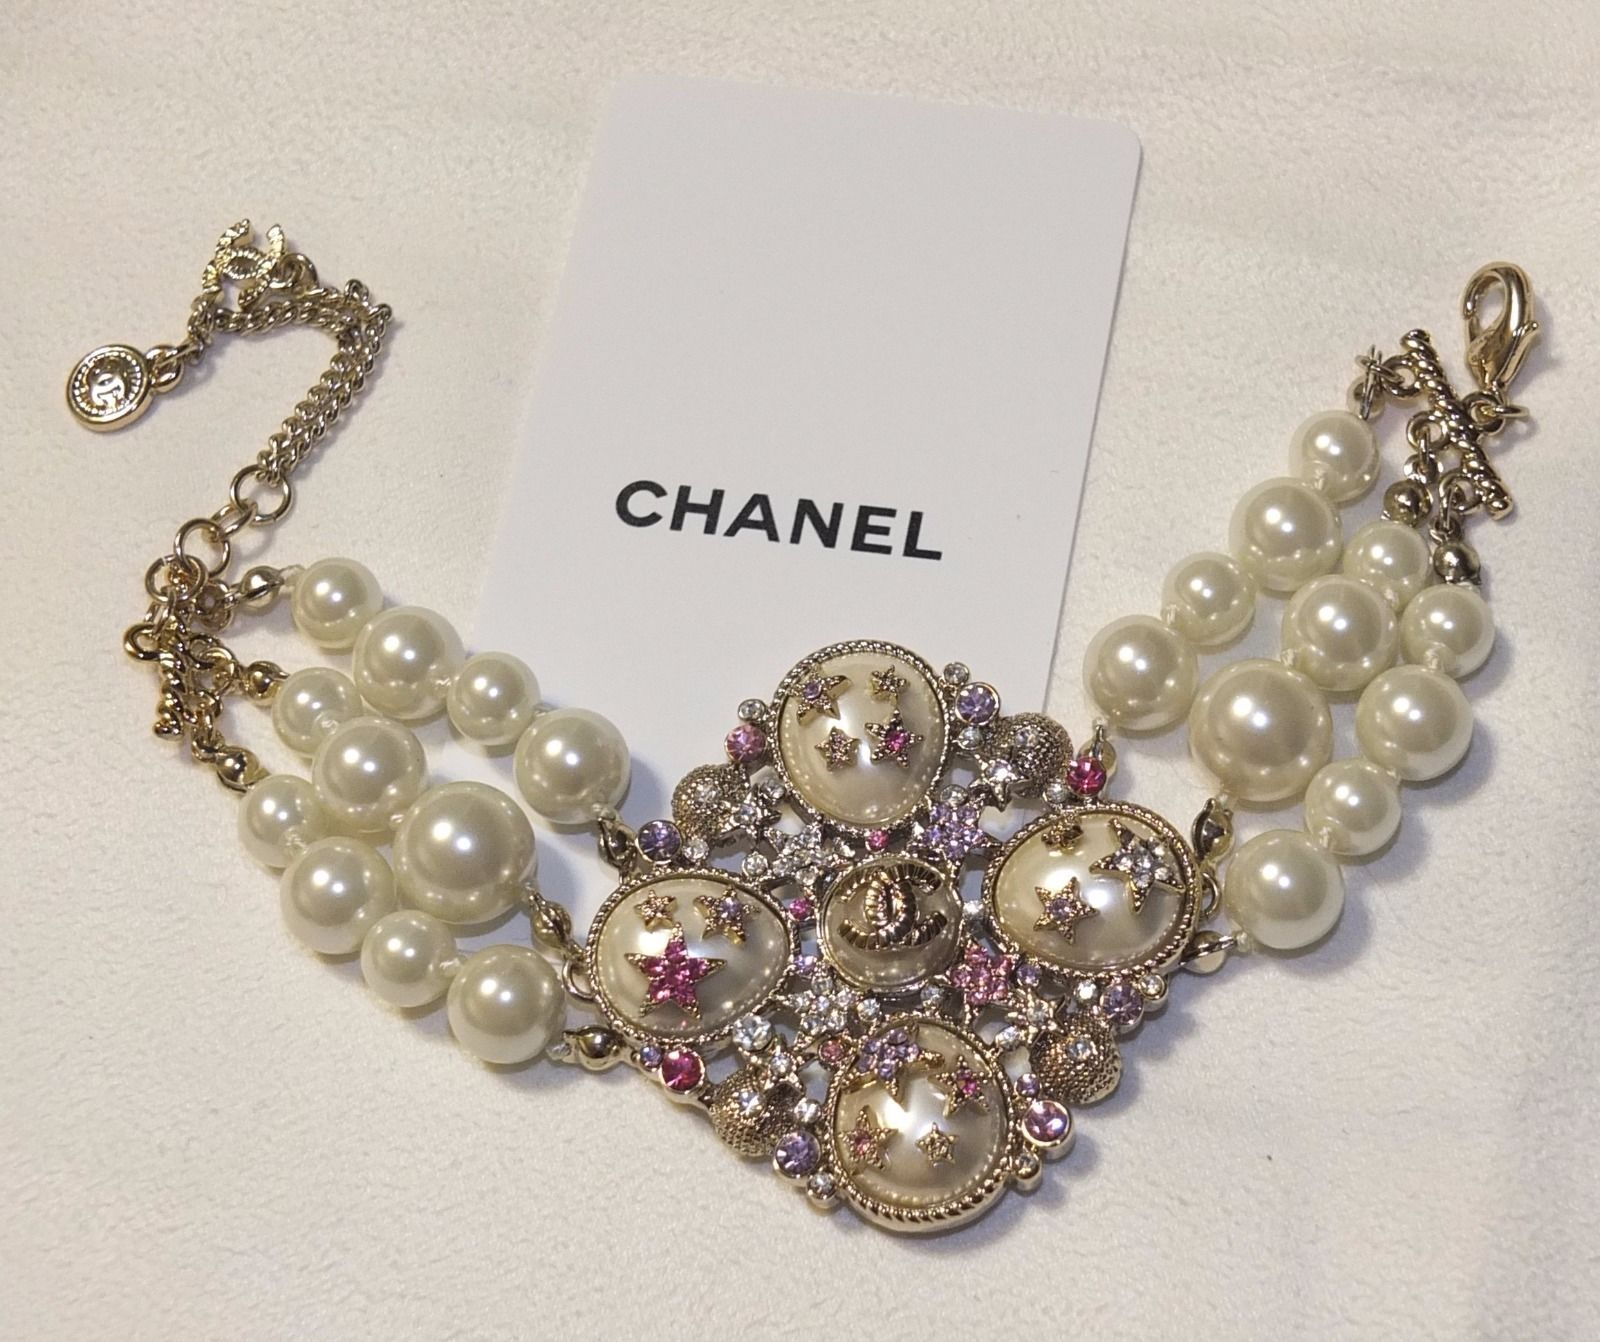 NEW Chanel CC Logo With White Pearl VIP GIFT Bracelet